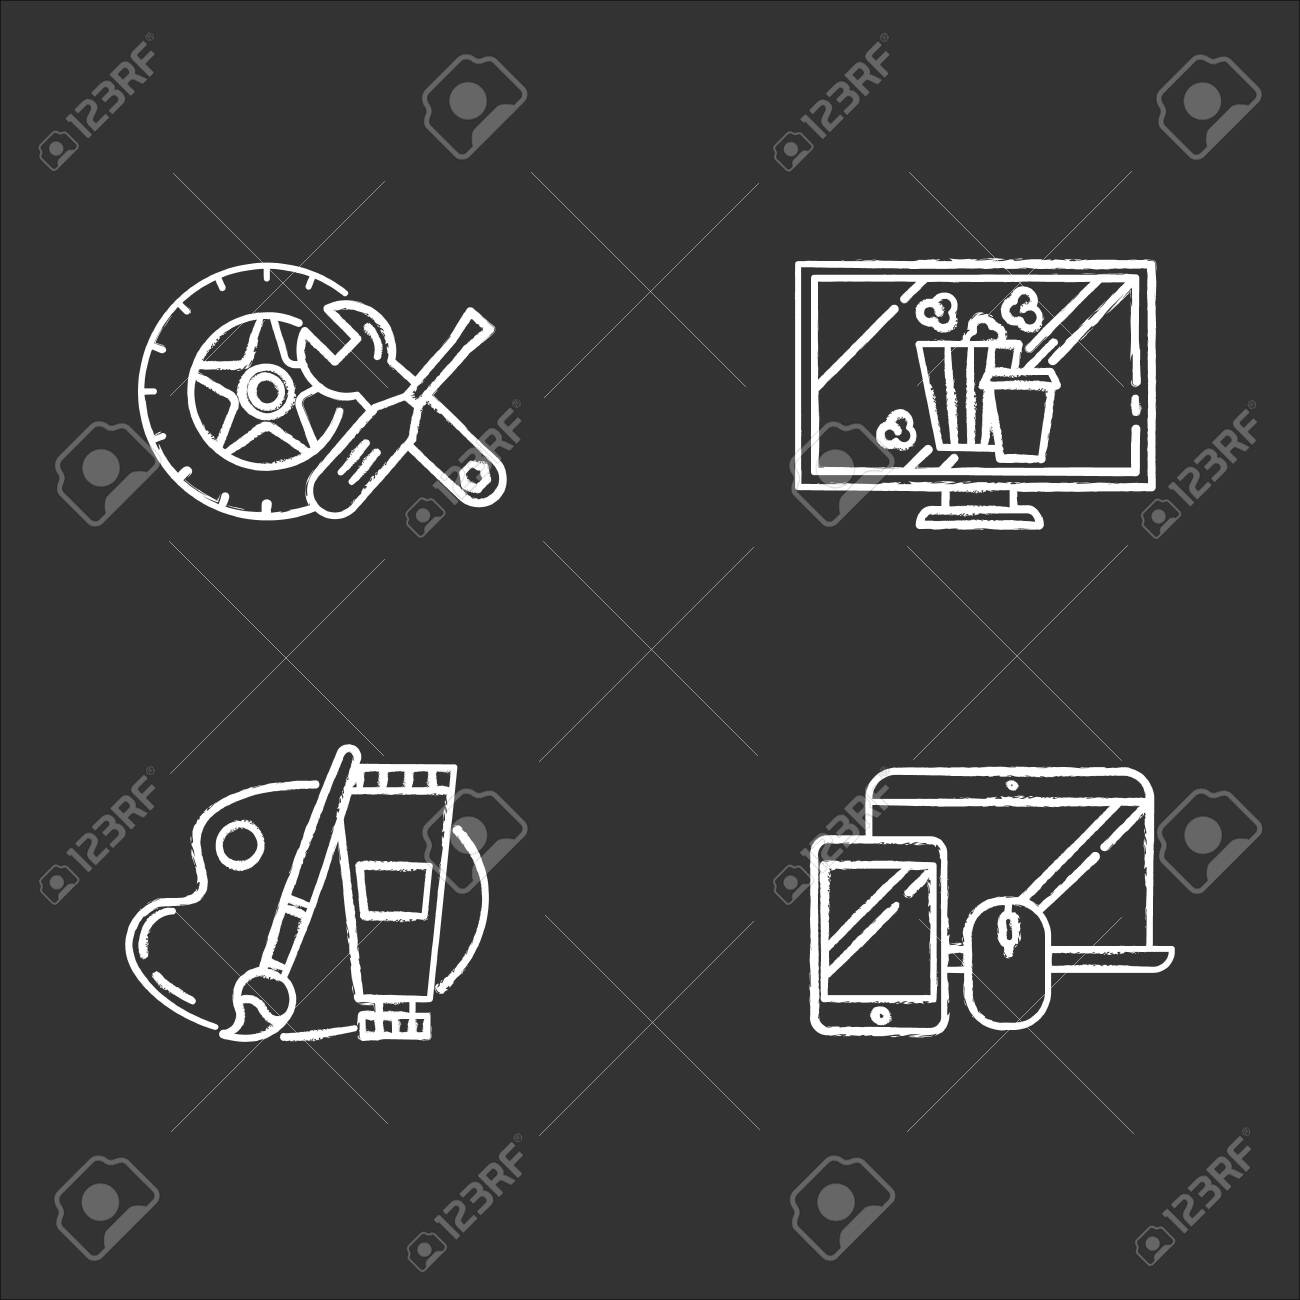 E commerce departments chalk icons set. Online shopping categories. Internet retail. Arts and crafts, hobbies. Electronics. Auto parts. Movies and television. Isolated vector chalkboard illustrations - 132881361